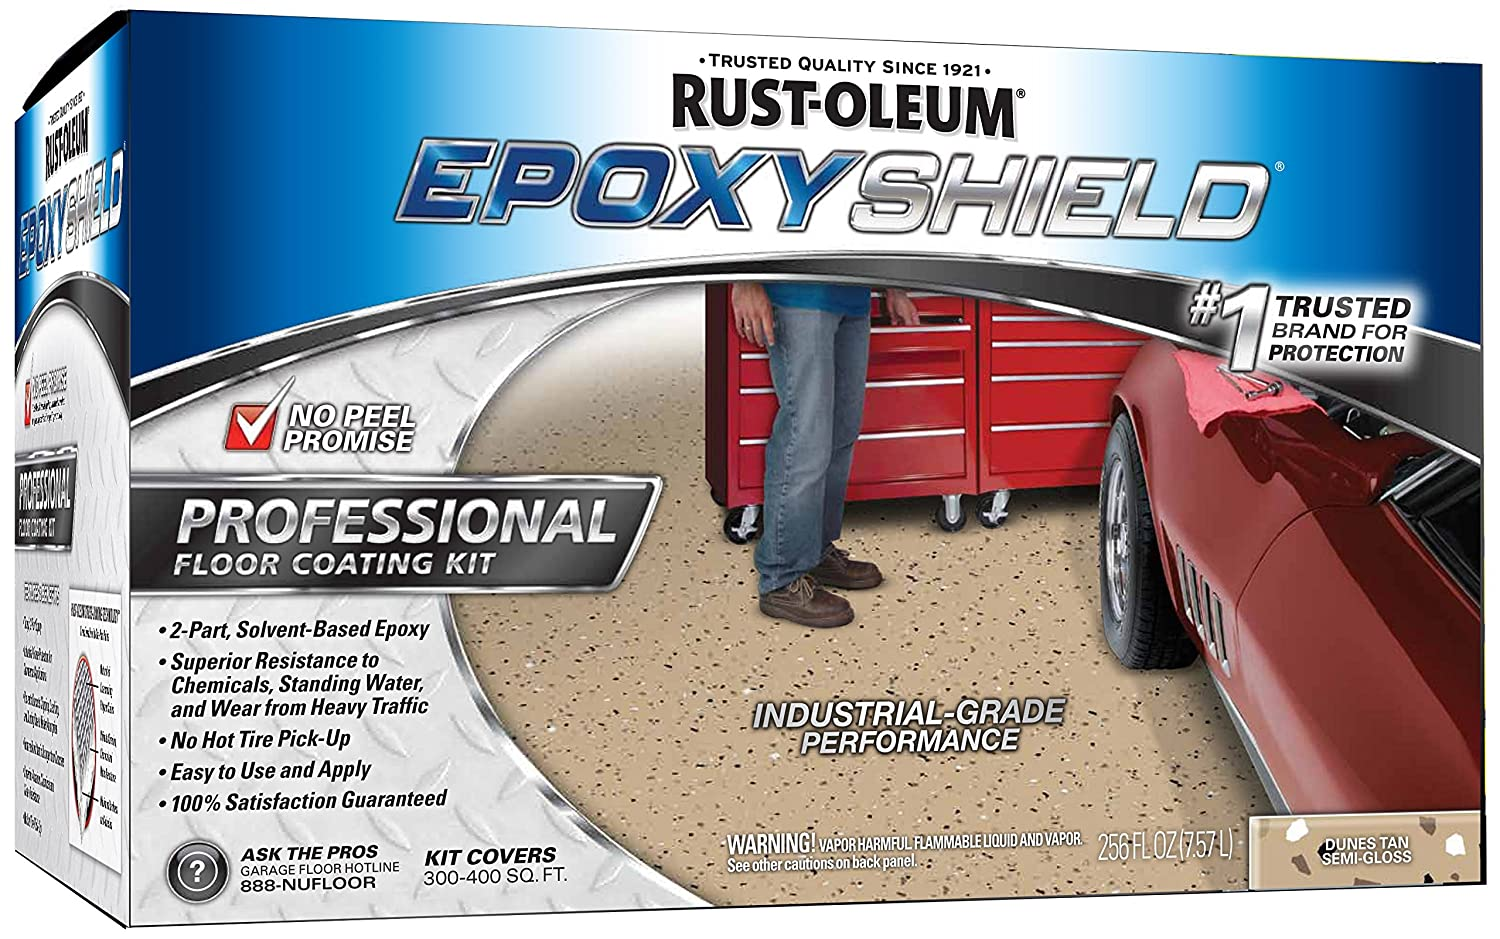 oleum coating rust supercheap of kit image floorsrustoleum paint ideas epoxyshield size full floor fearsome rustoleum design auto coatings garage